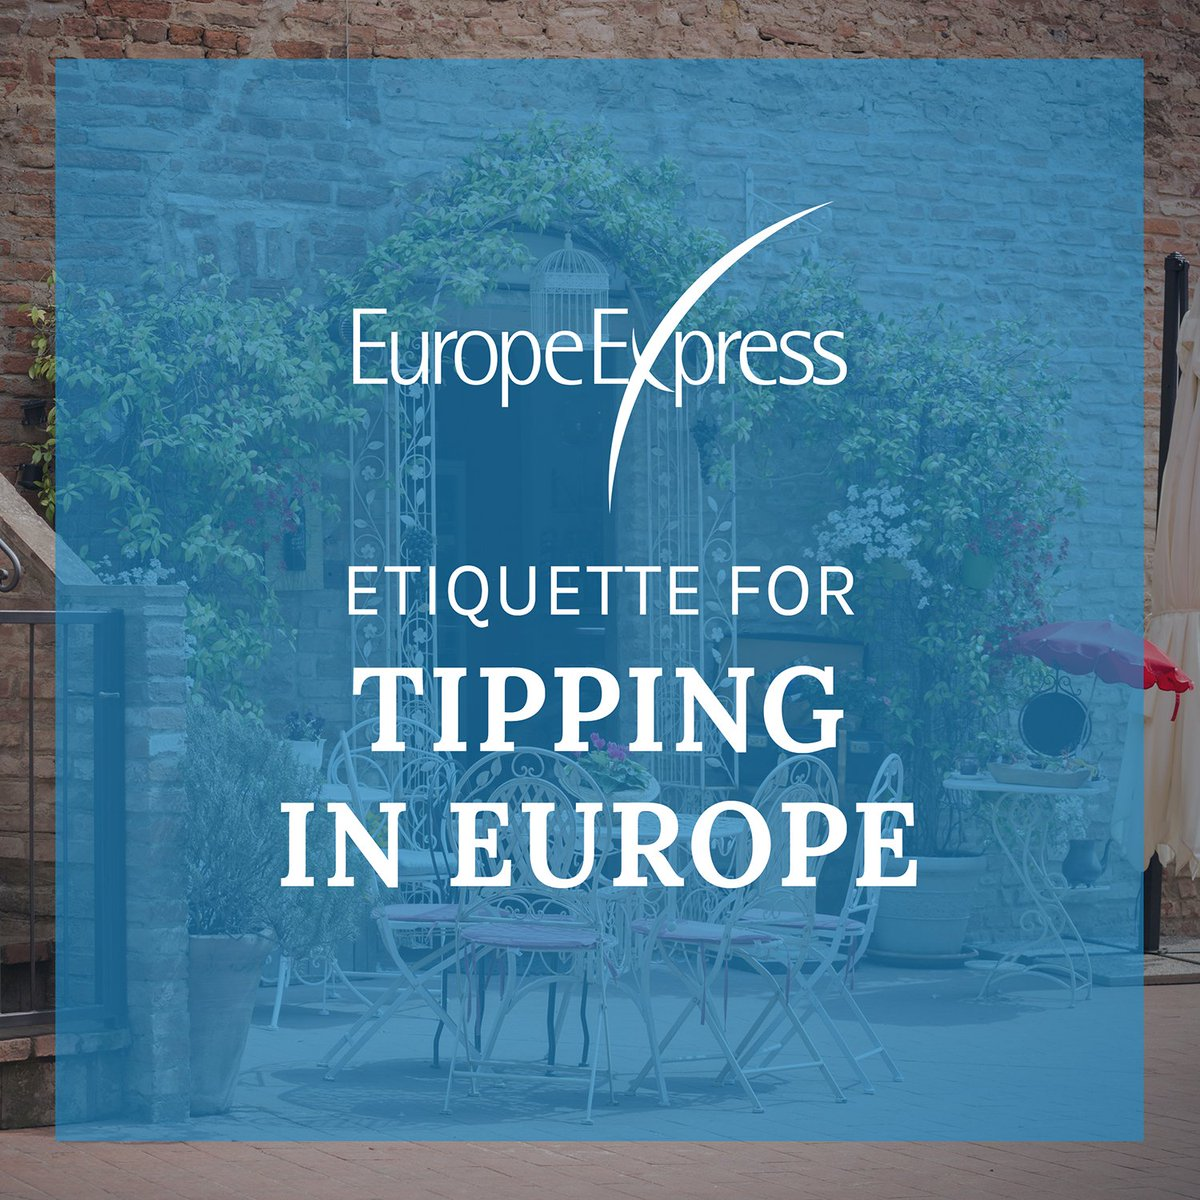 Check out our comprehensive guide to tipping across Europe!  https://t.co/0pNbrdQ52A https://t.co/Vqc01lebTL